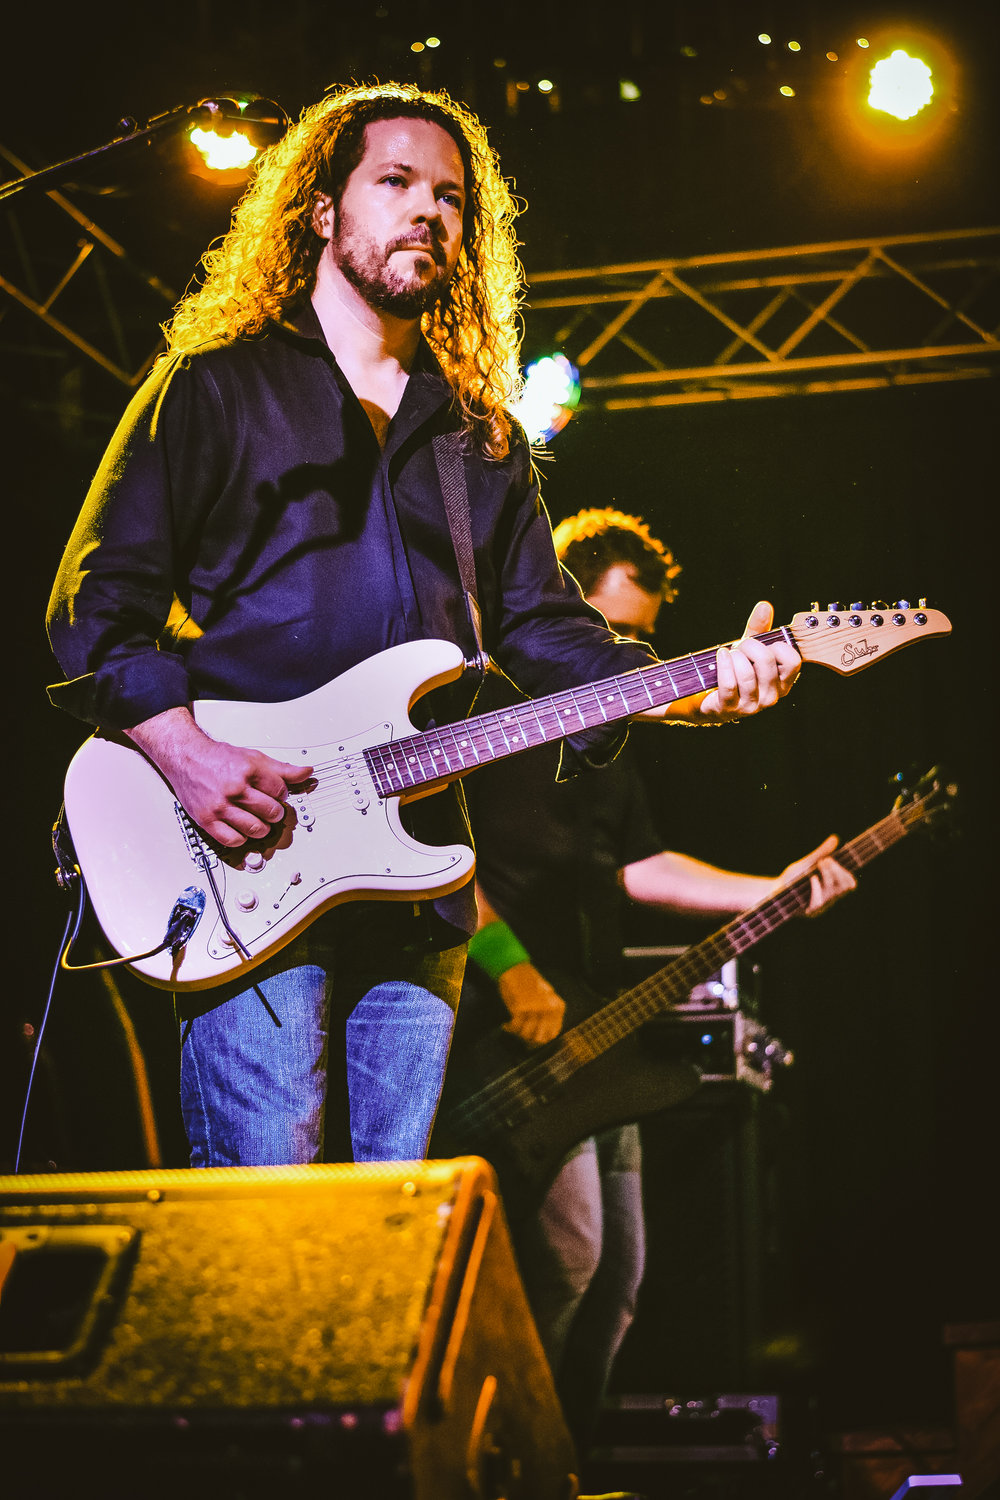 The lead guitar player of The Clintones.